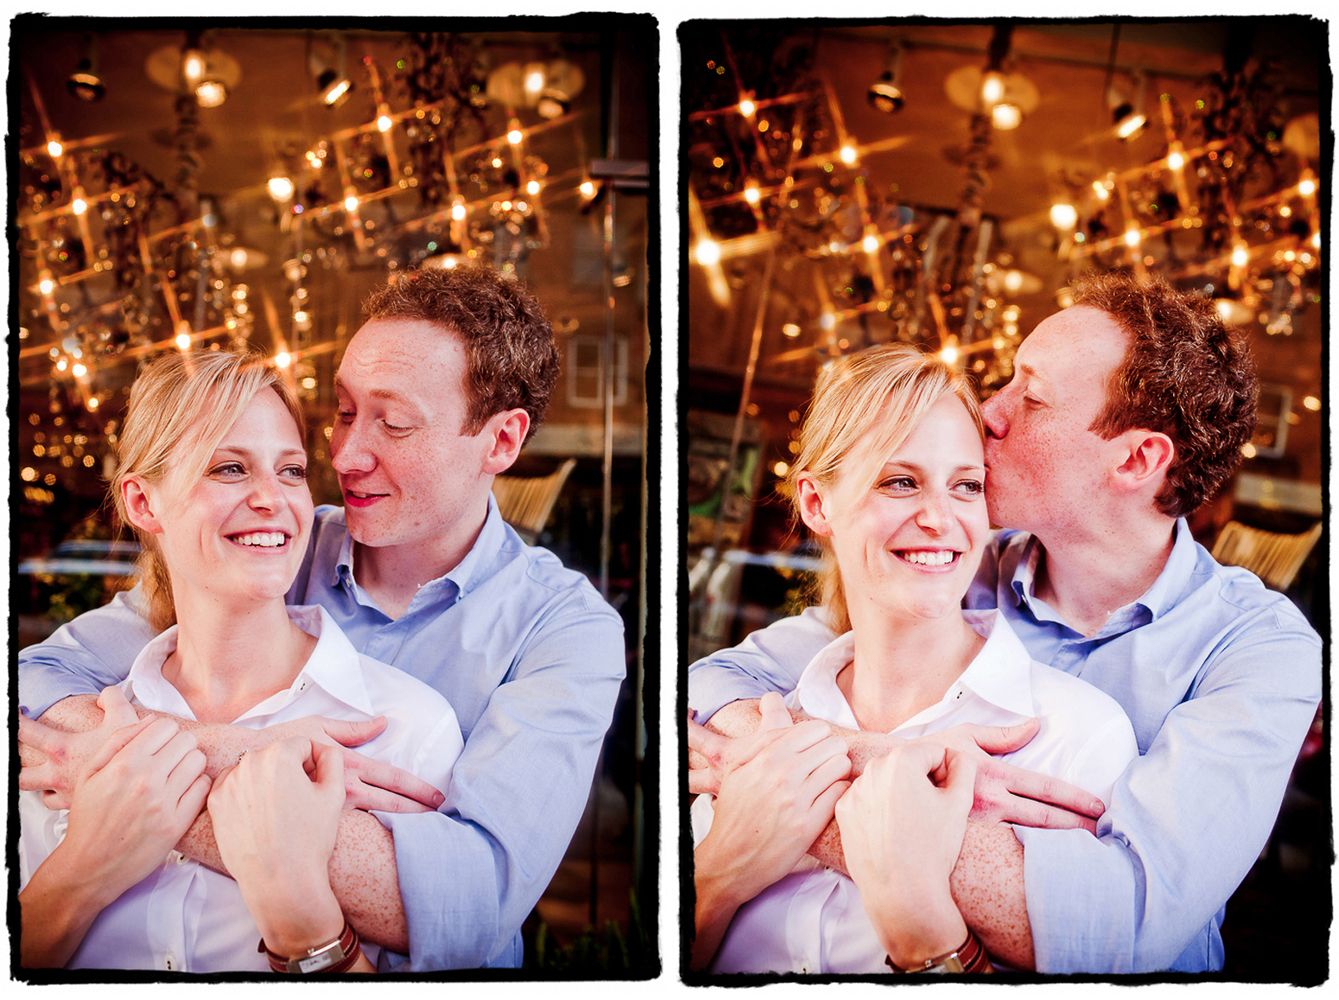 Engagement Portraits: Kate & Charlie with some twinkling lights in the West Village.